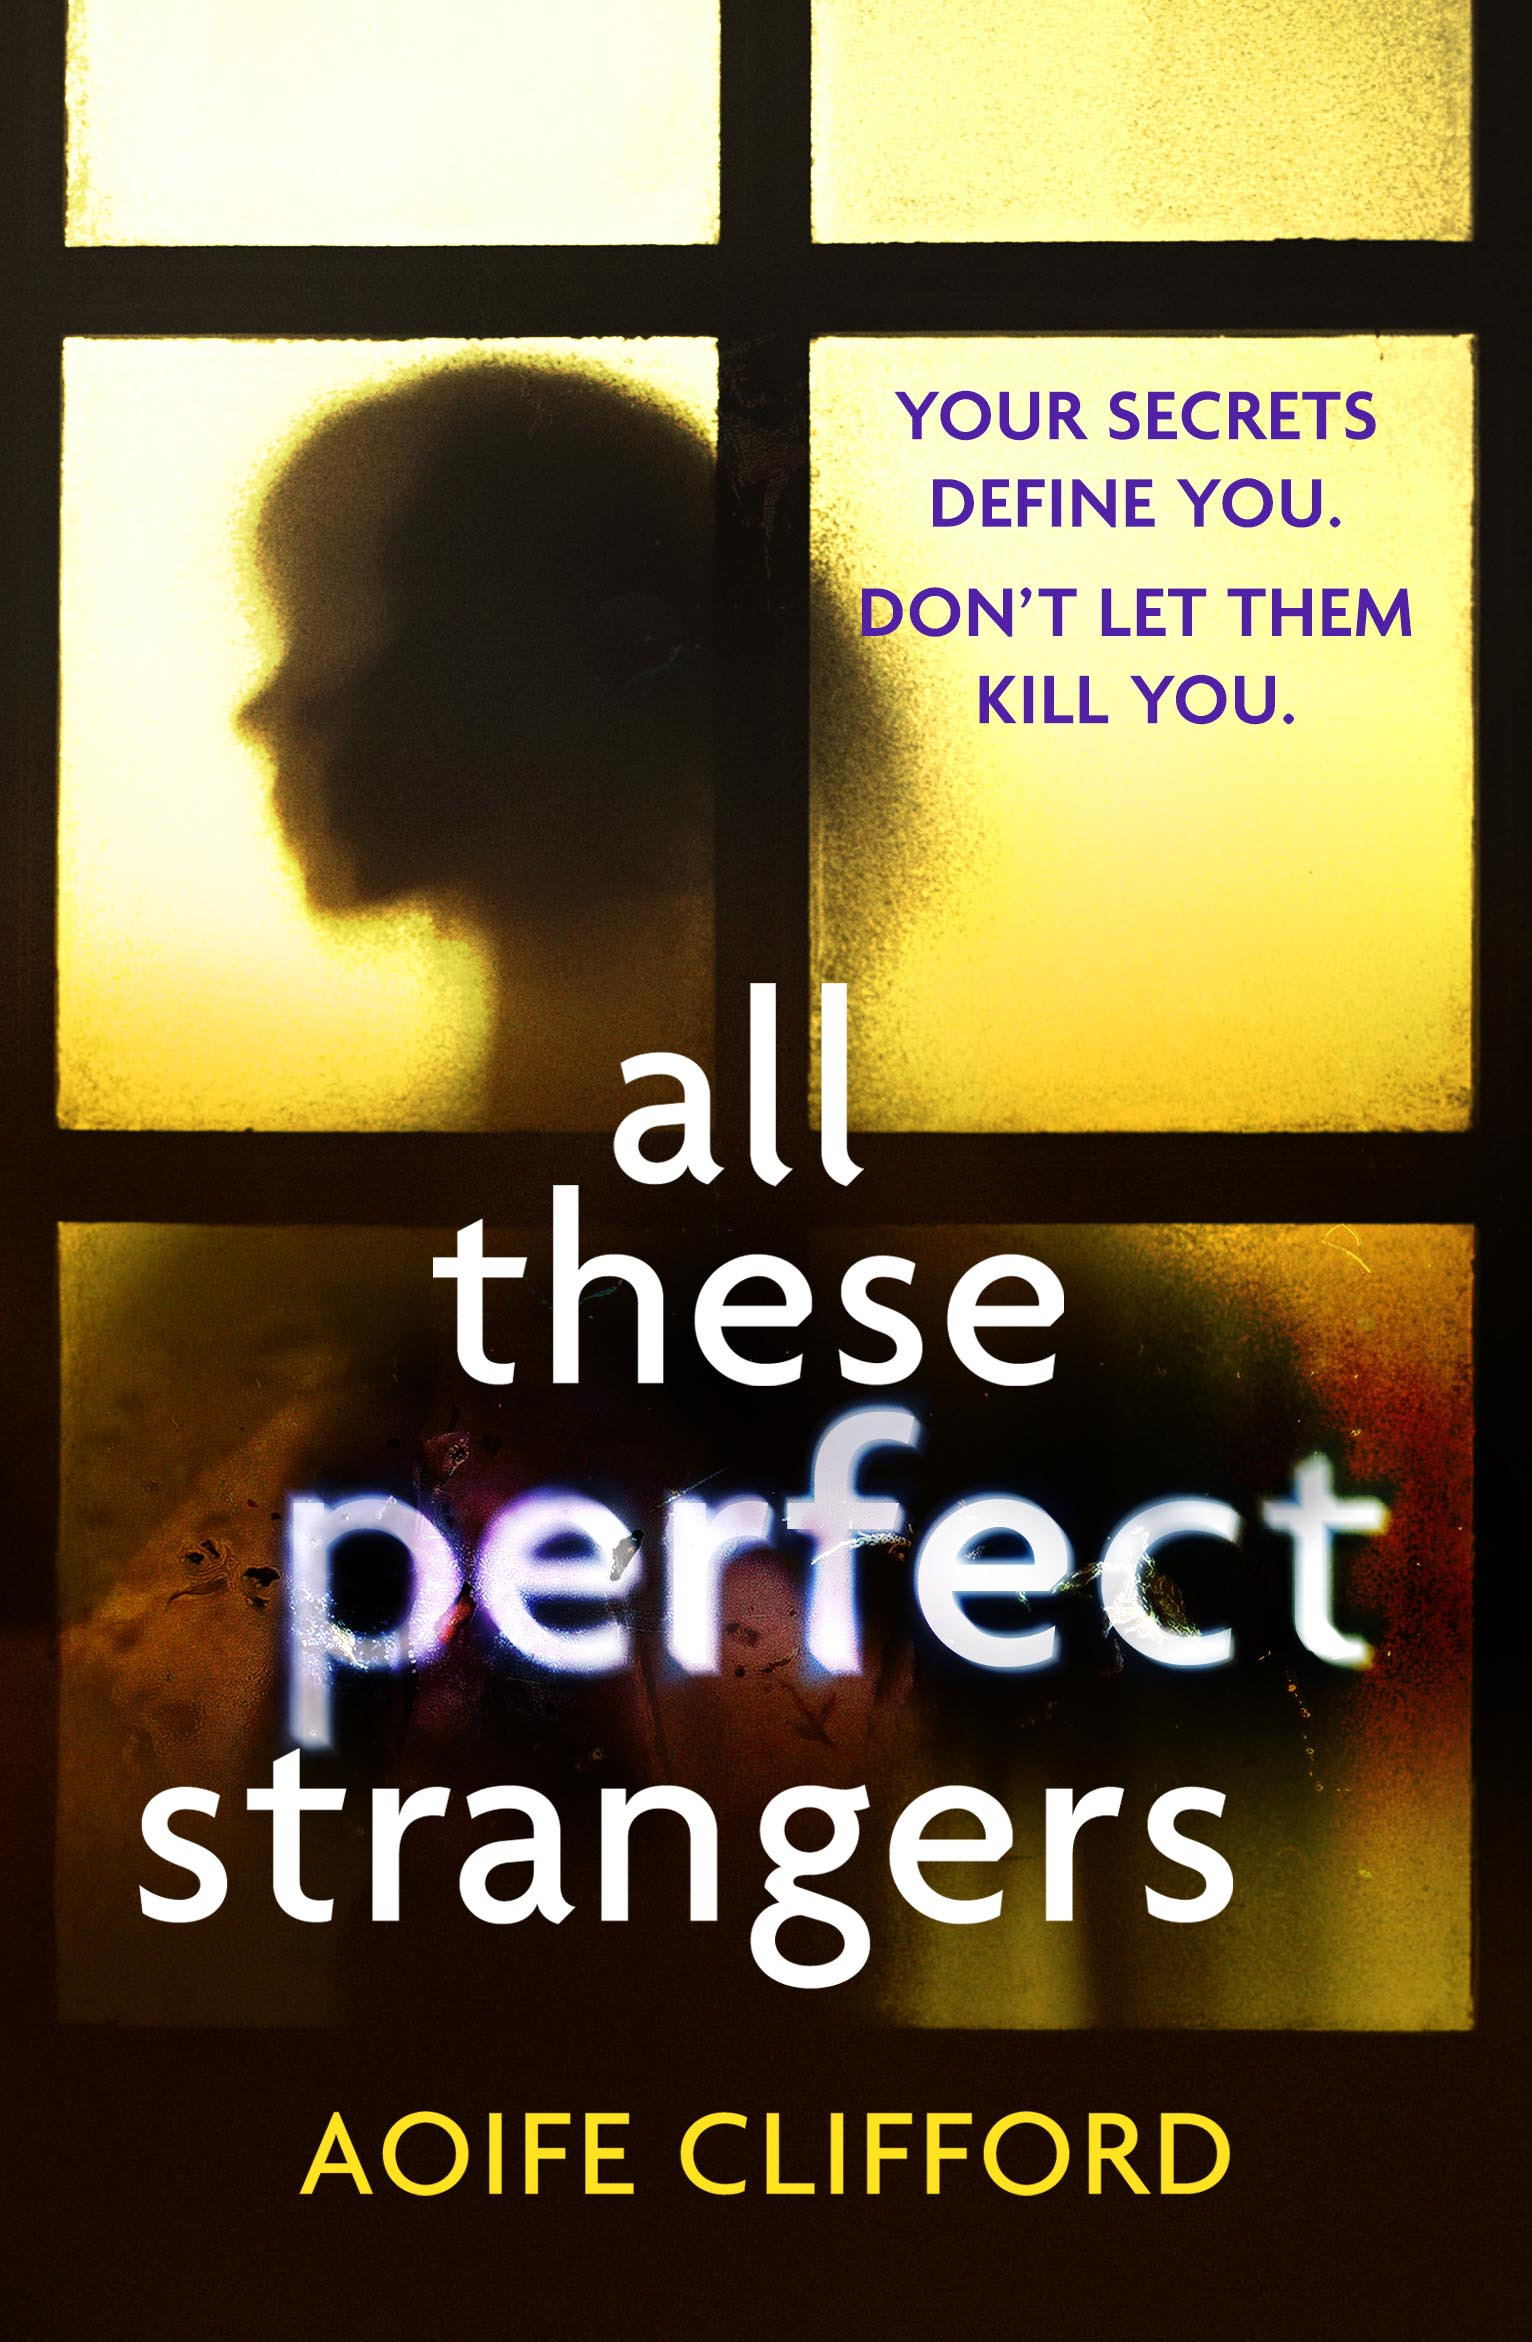 All these perfect strangers revised.jpg